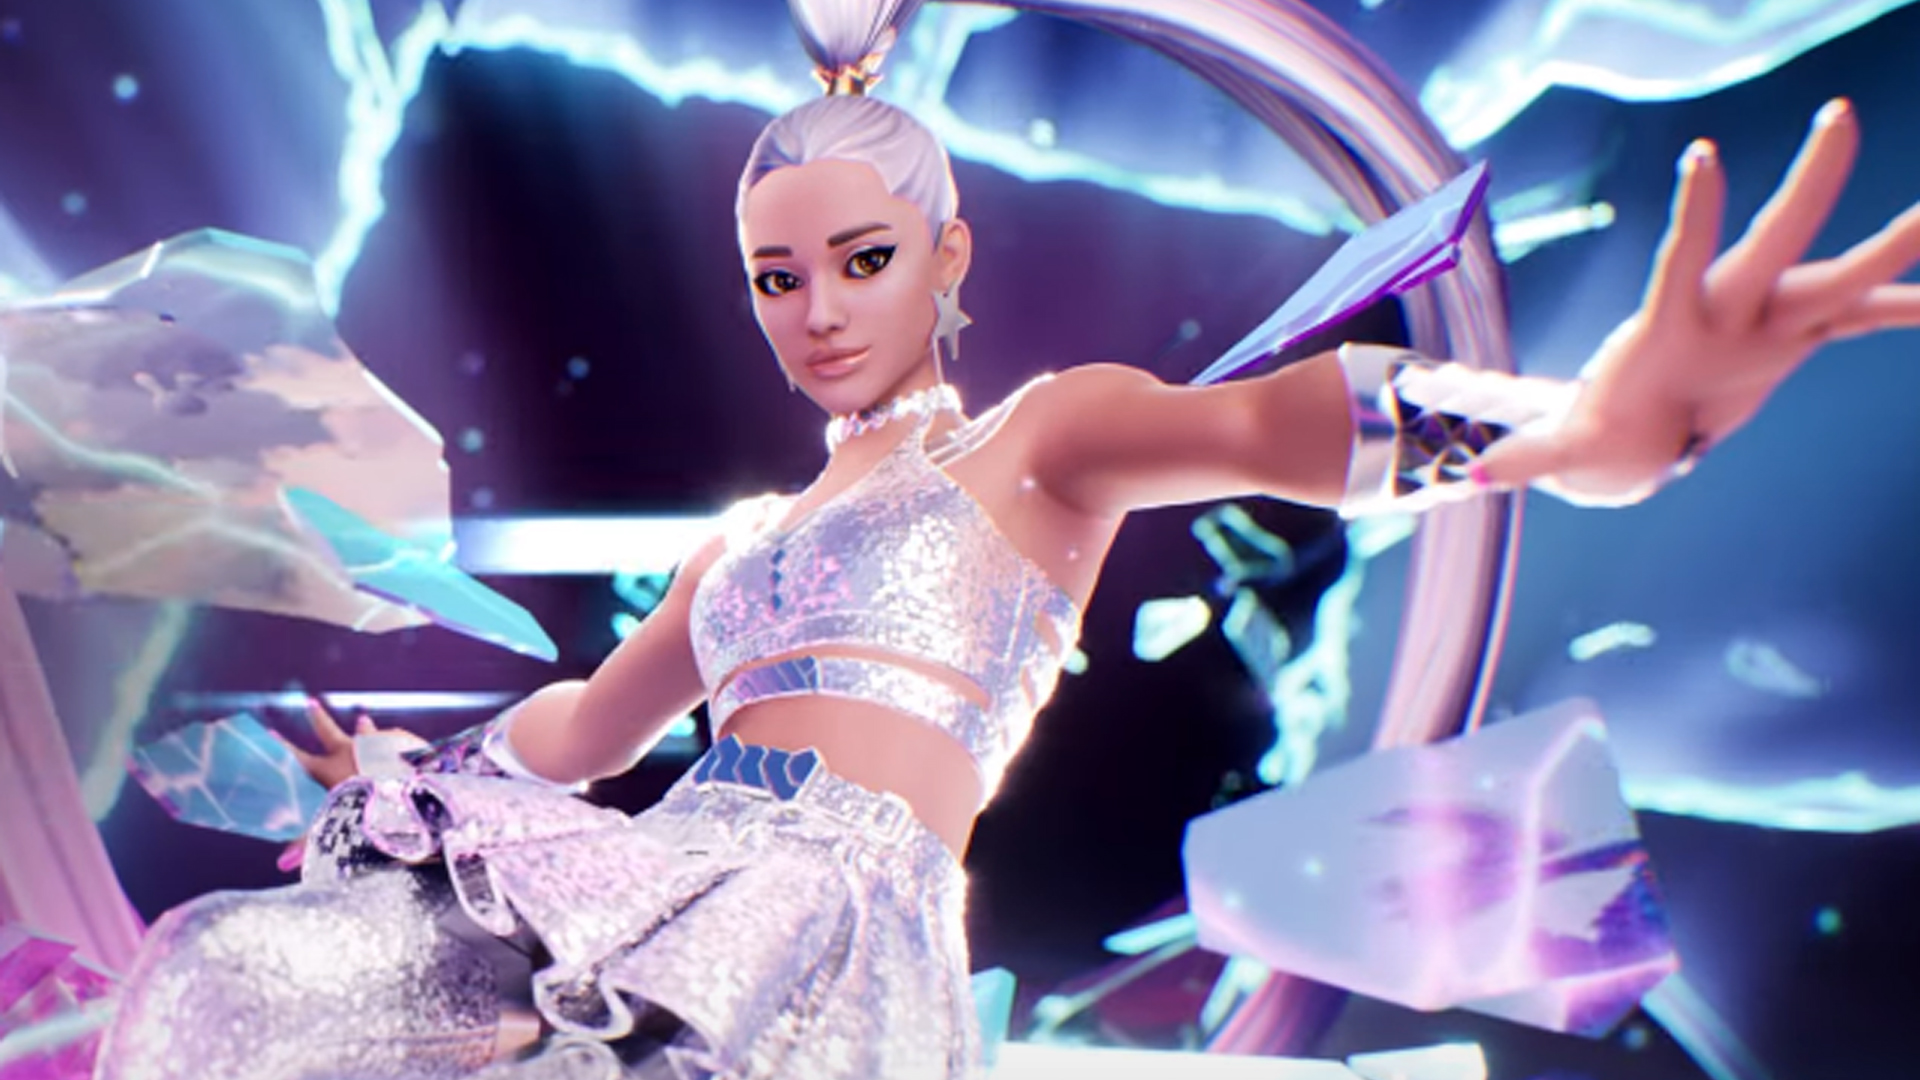 Fortnite is getting an Ariana Grande concert this week